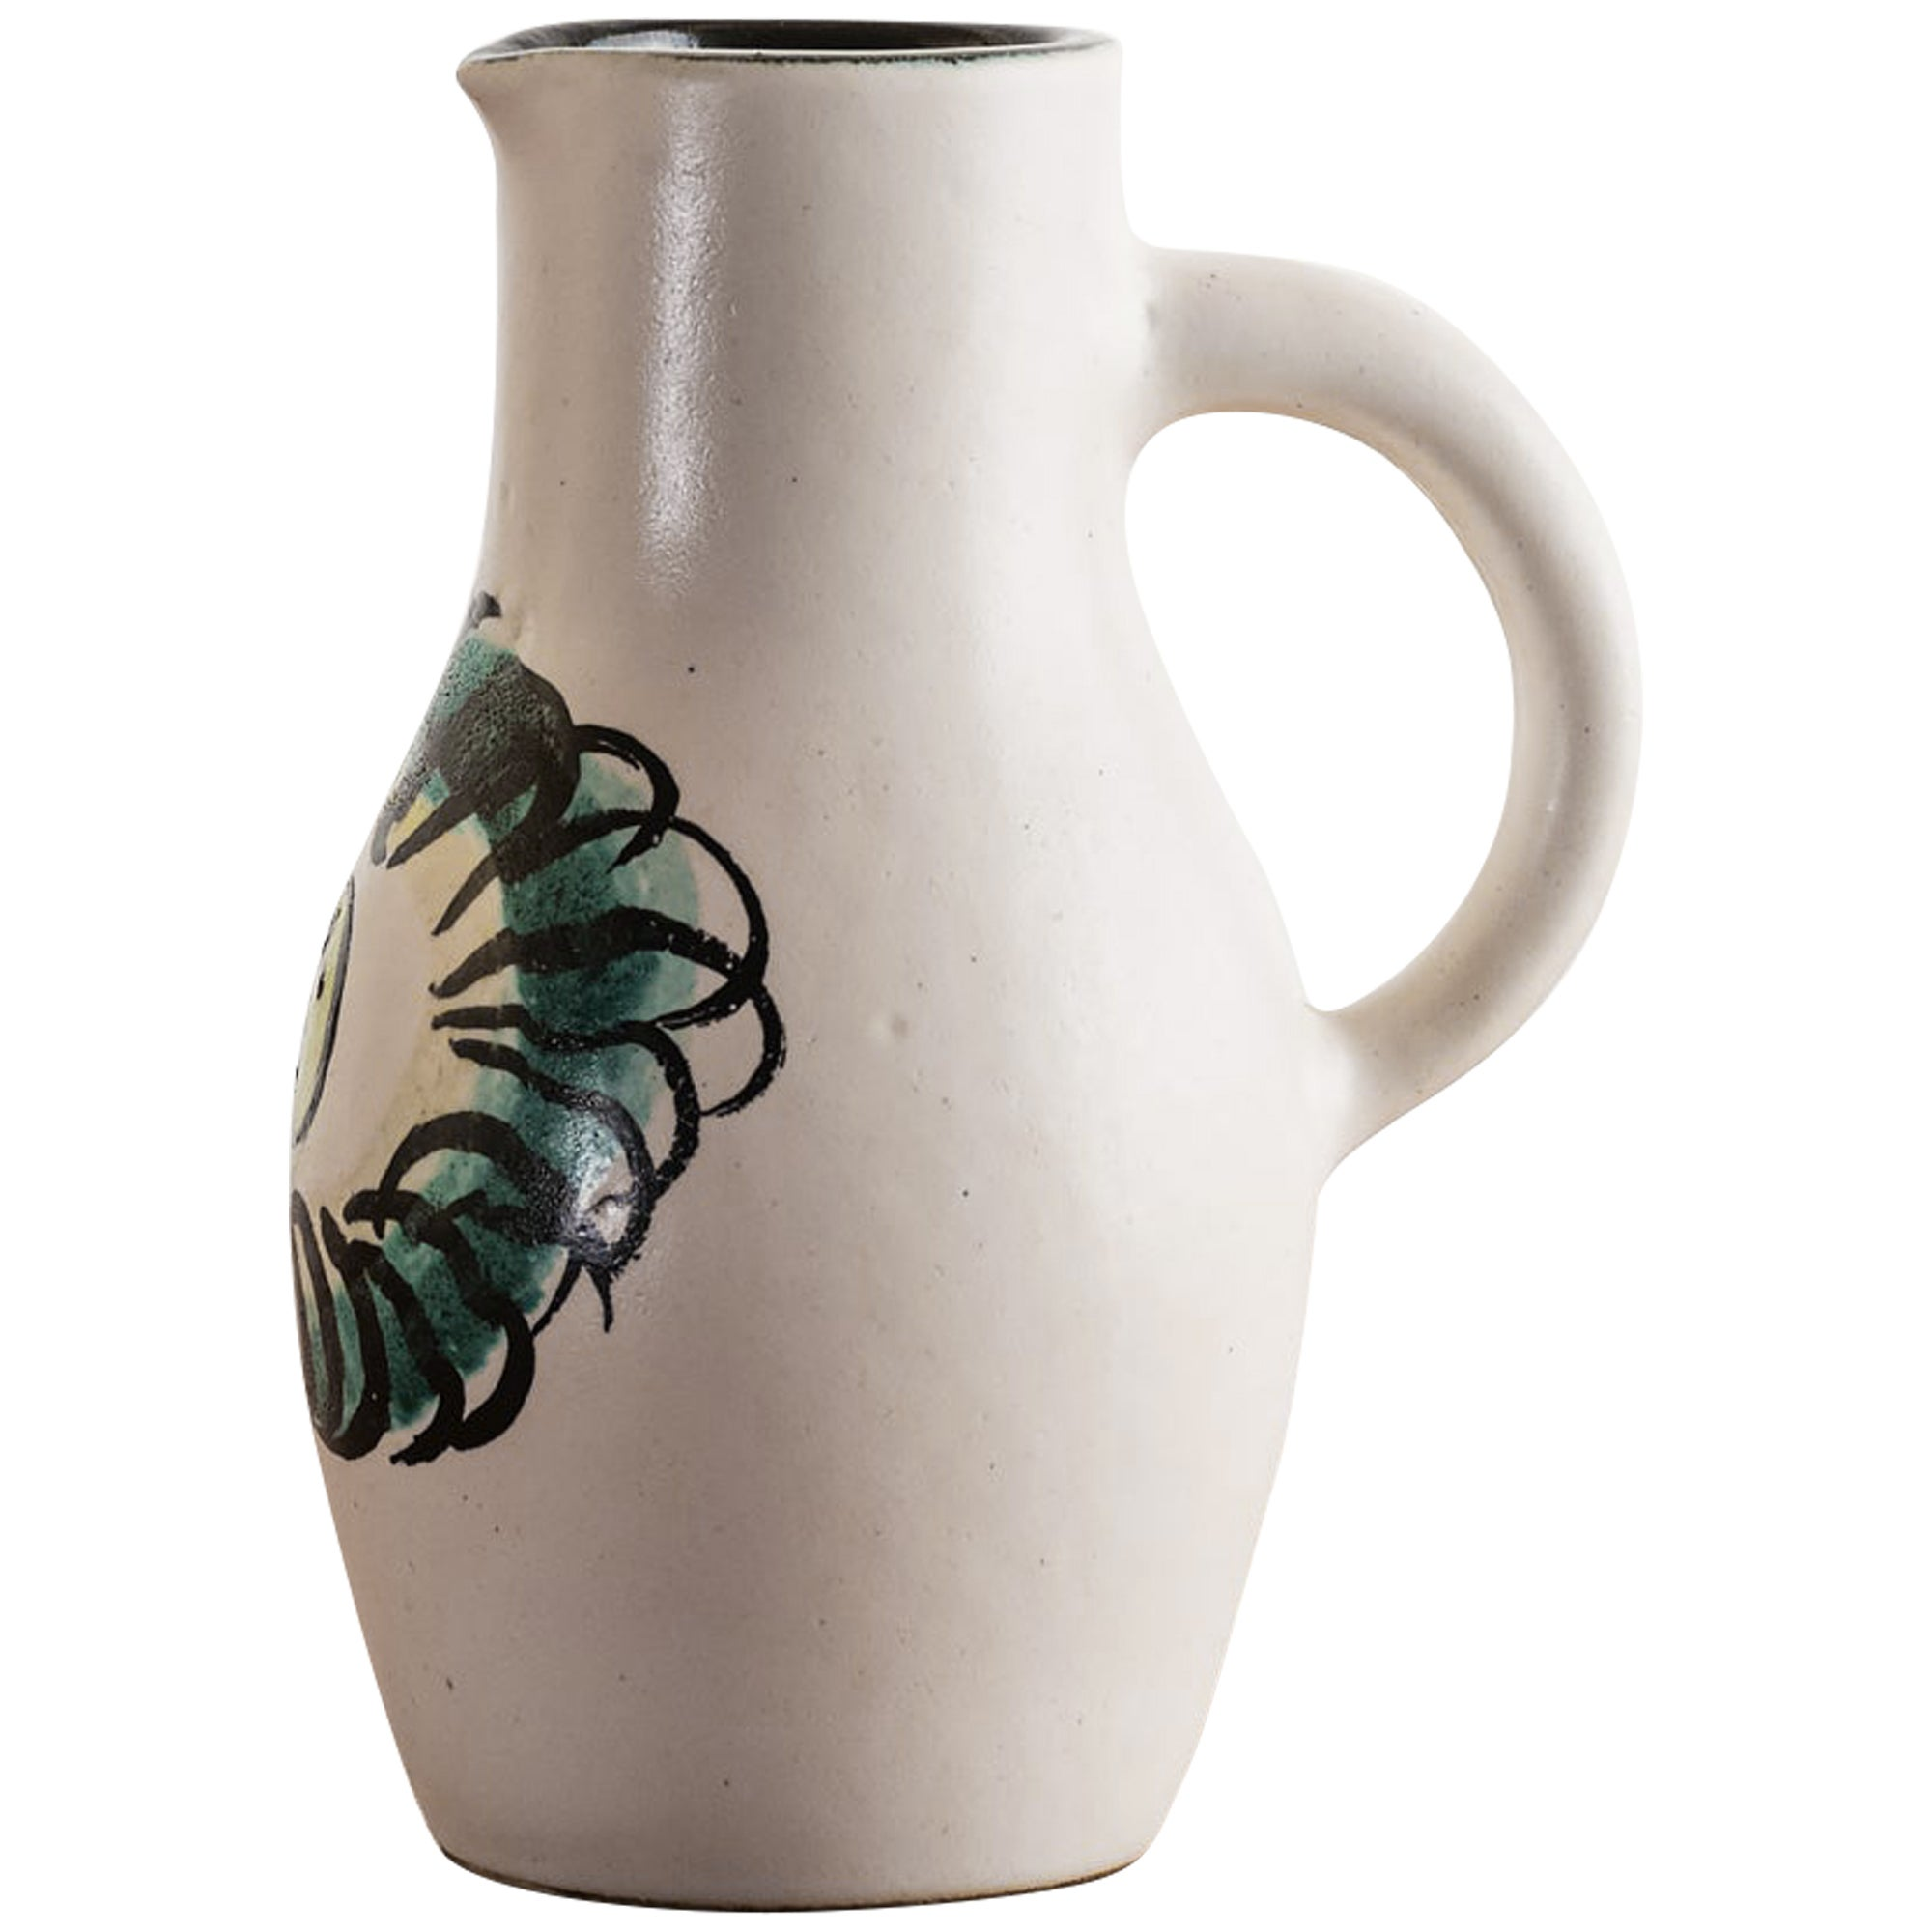 Georges Jouve Pitcher in Cream with Black Interior, 1950s